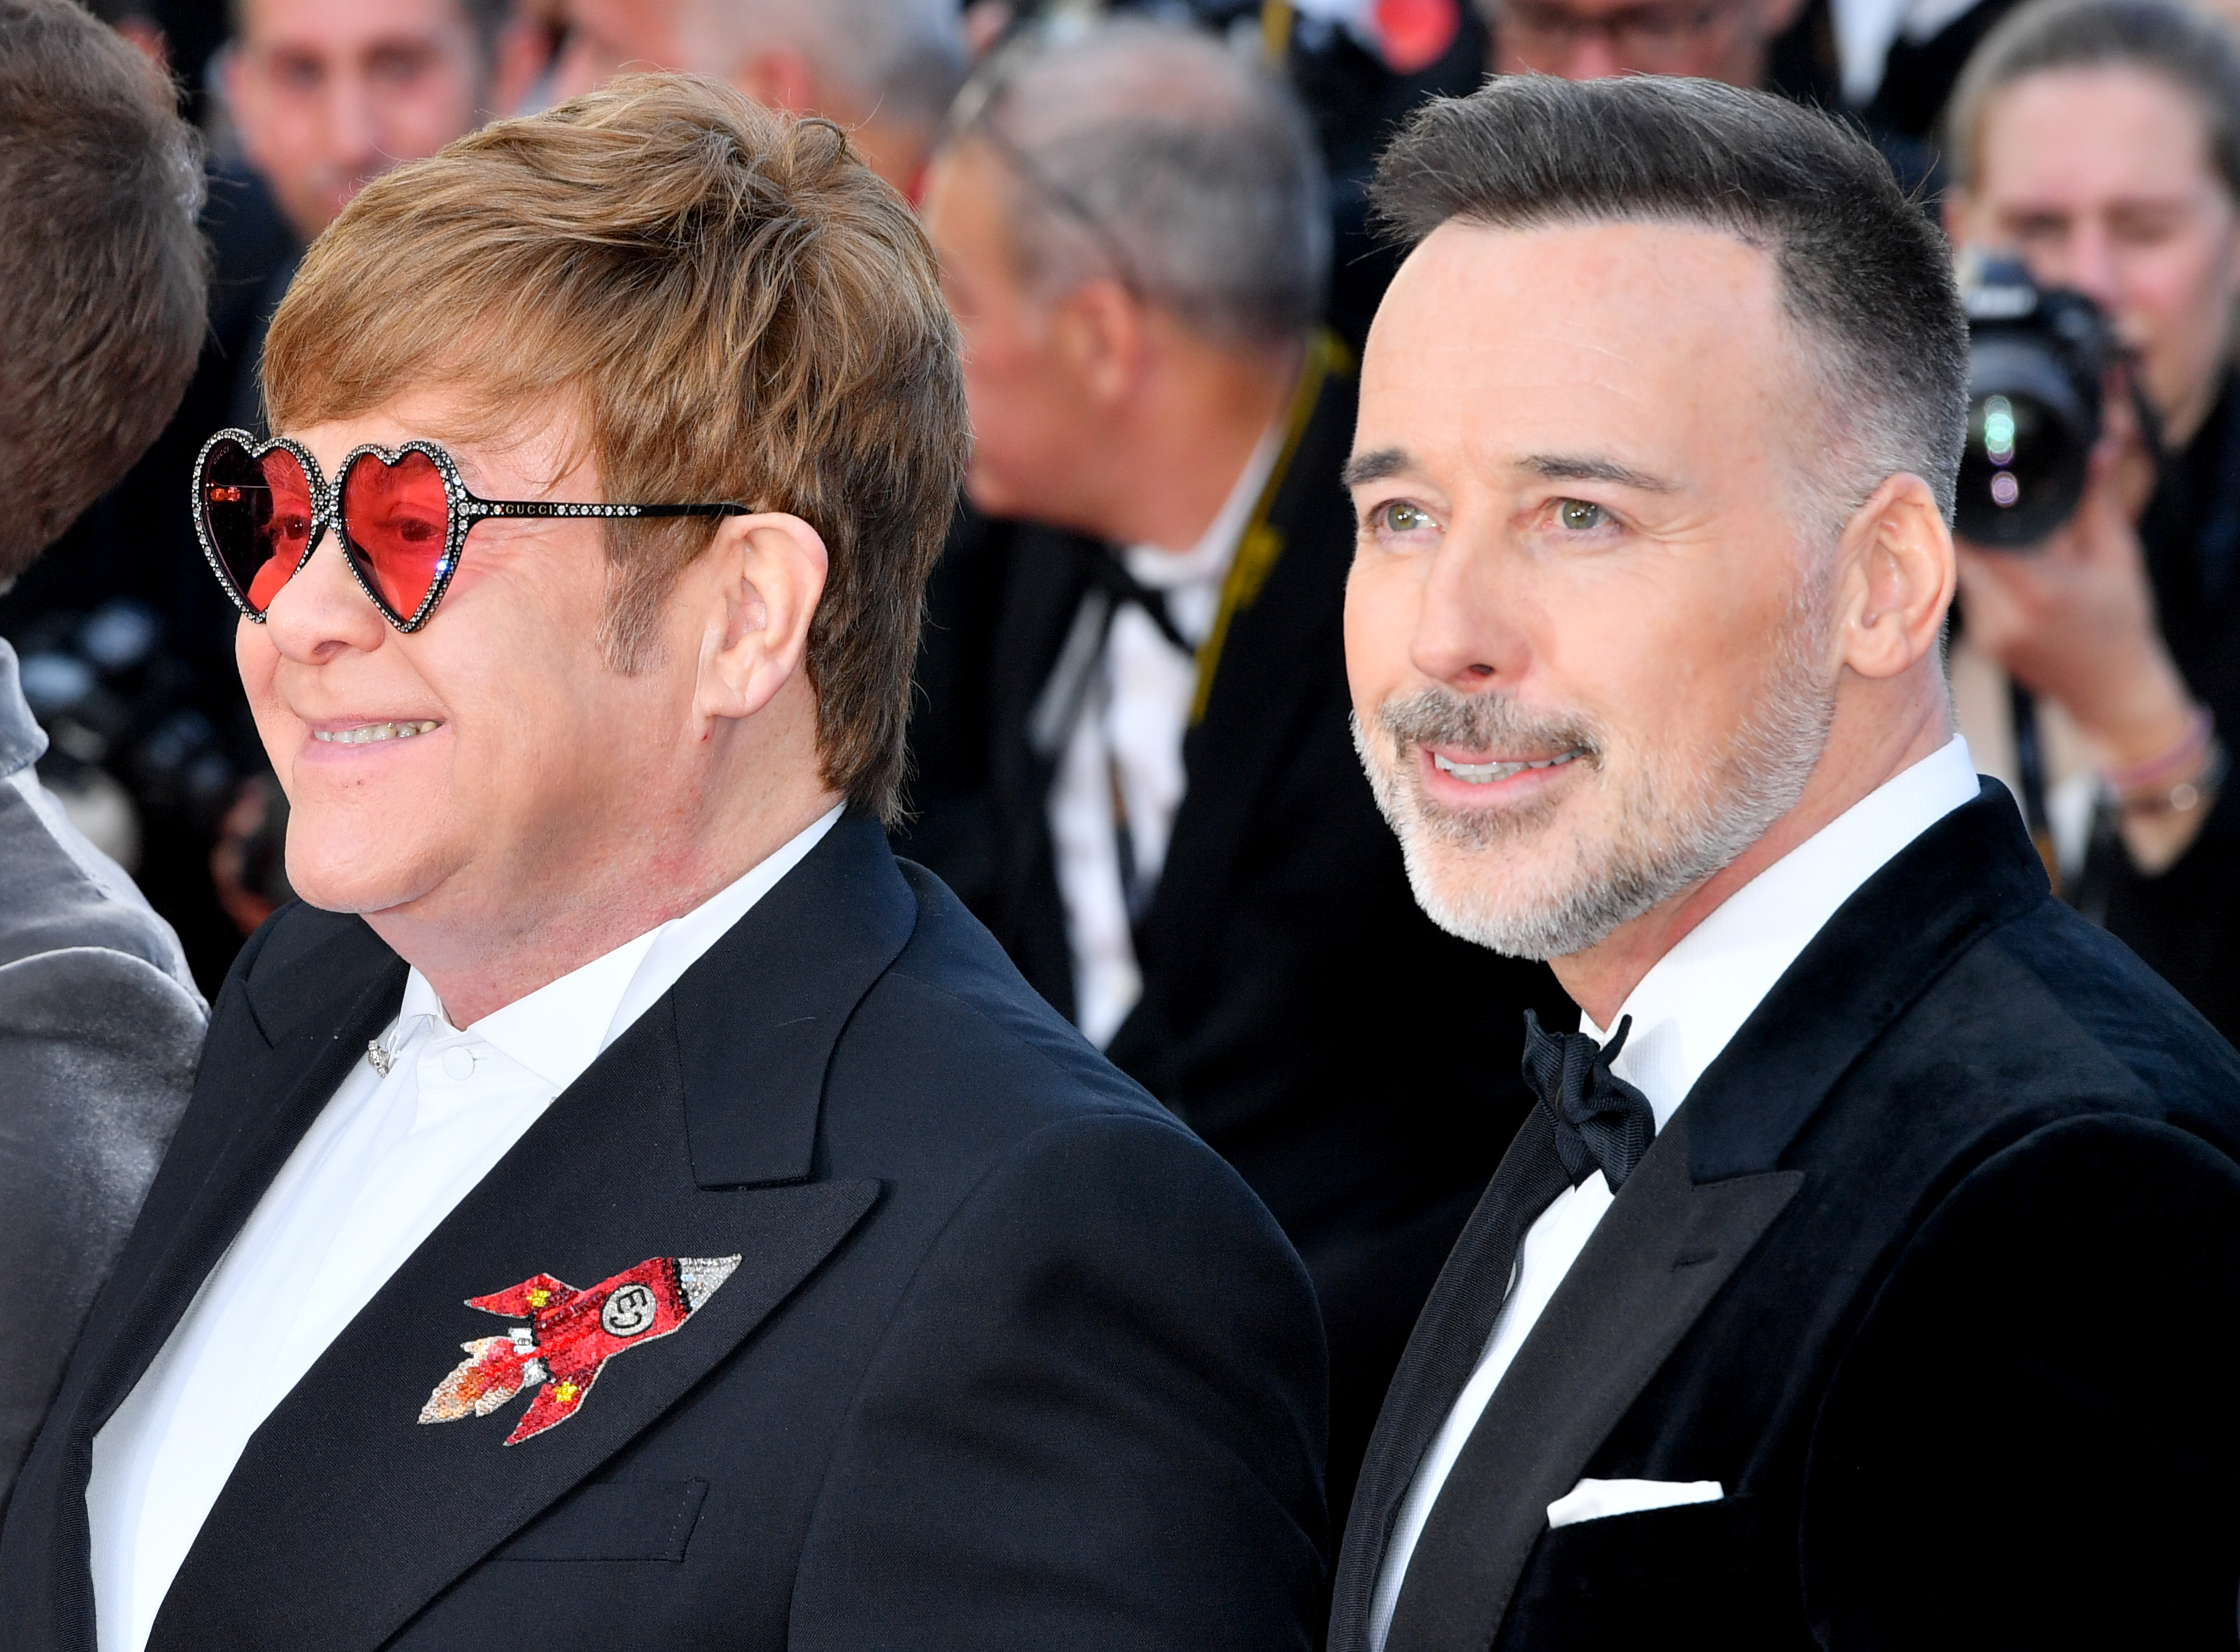 Elton John and David Furnish'Rocketman' premiere, 72nd Cannes Film Festival, France - 16 May 2019